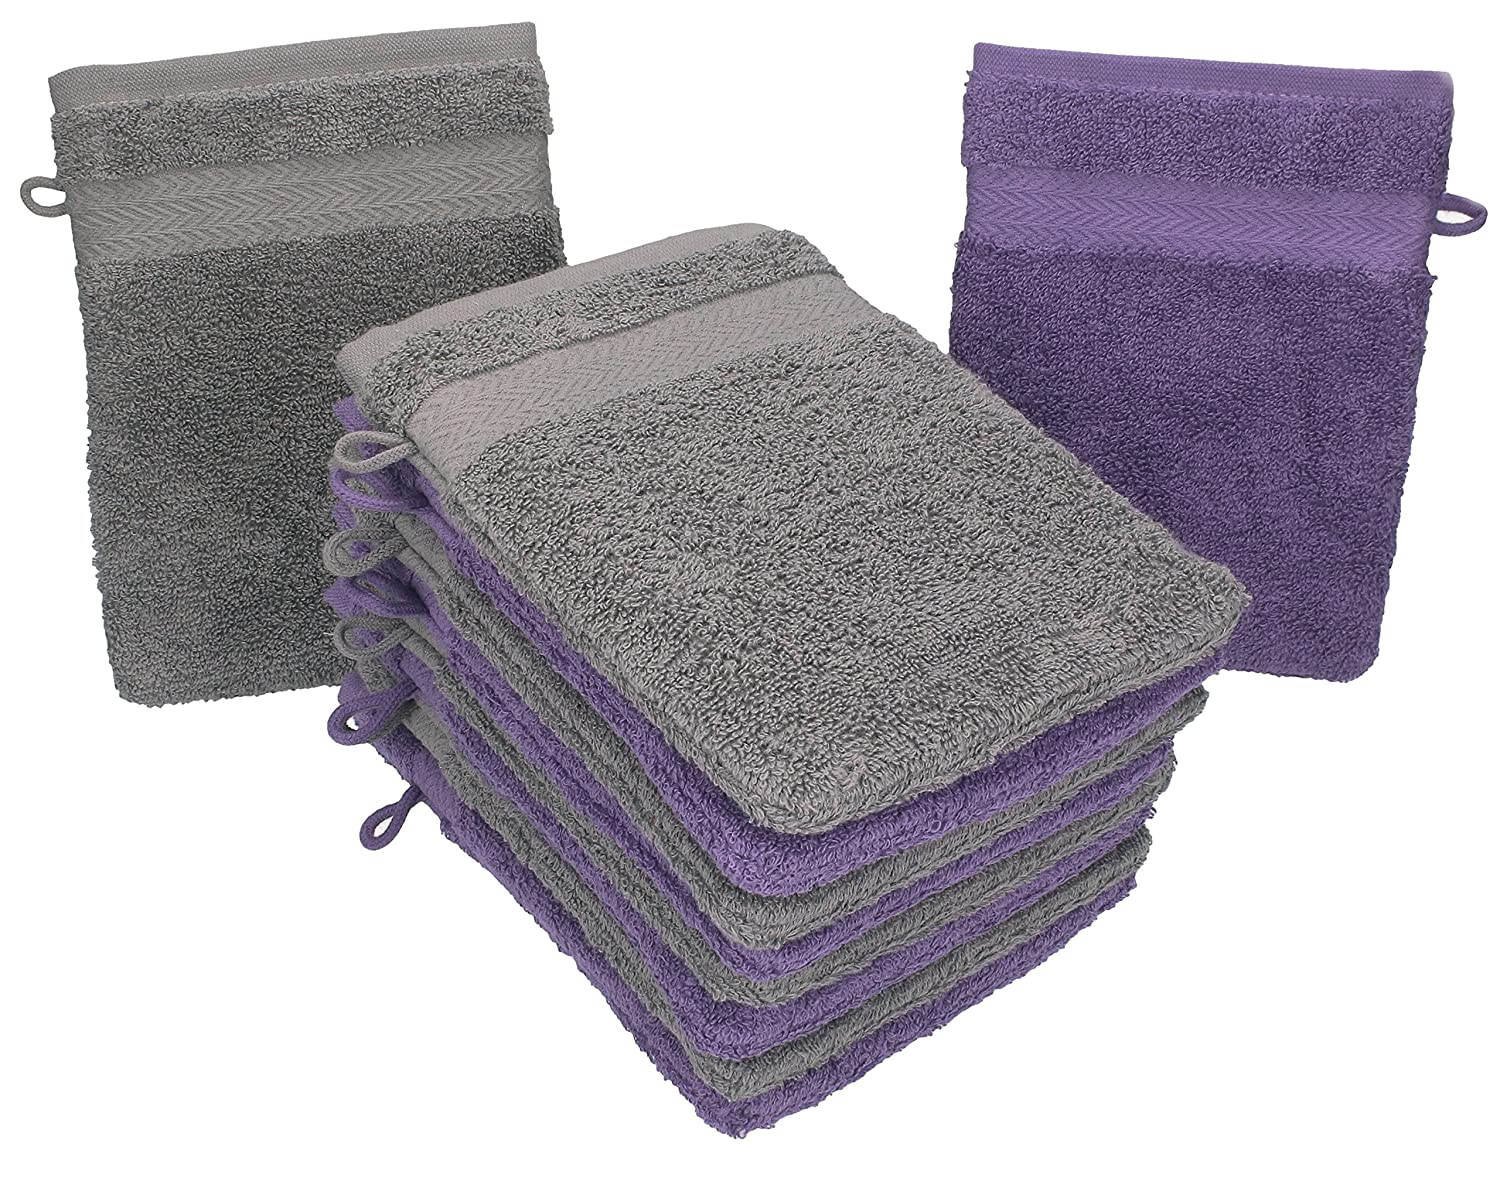 Betz Pack of 10 Wash Glove Mitts PREMIUM 100% Cotton 16x21 cm (purple & anthracite grey)